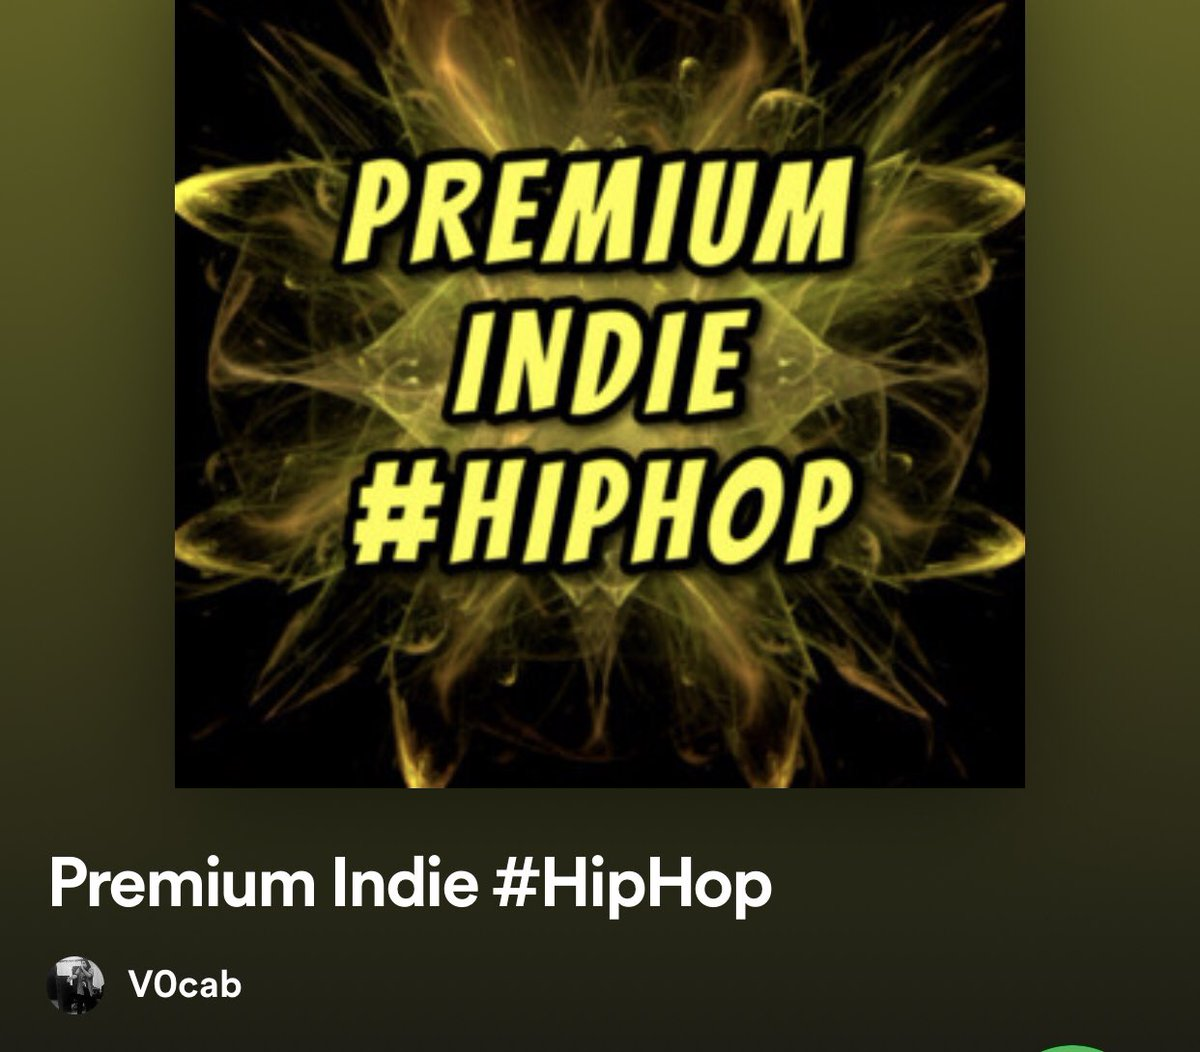 Yooo what up y'all!! Check out this playlist on Spotify nothing but dope artists 💯💯💯